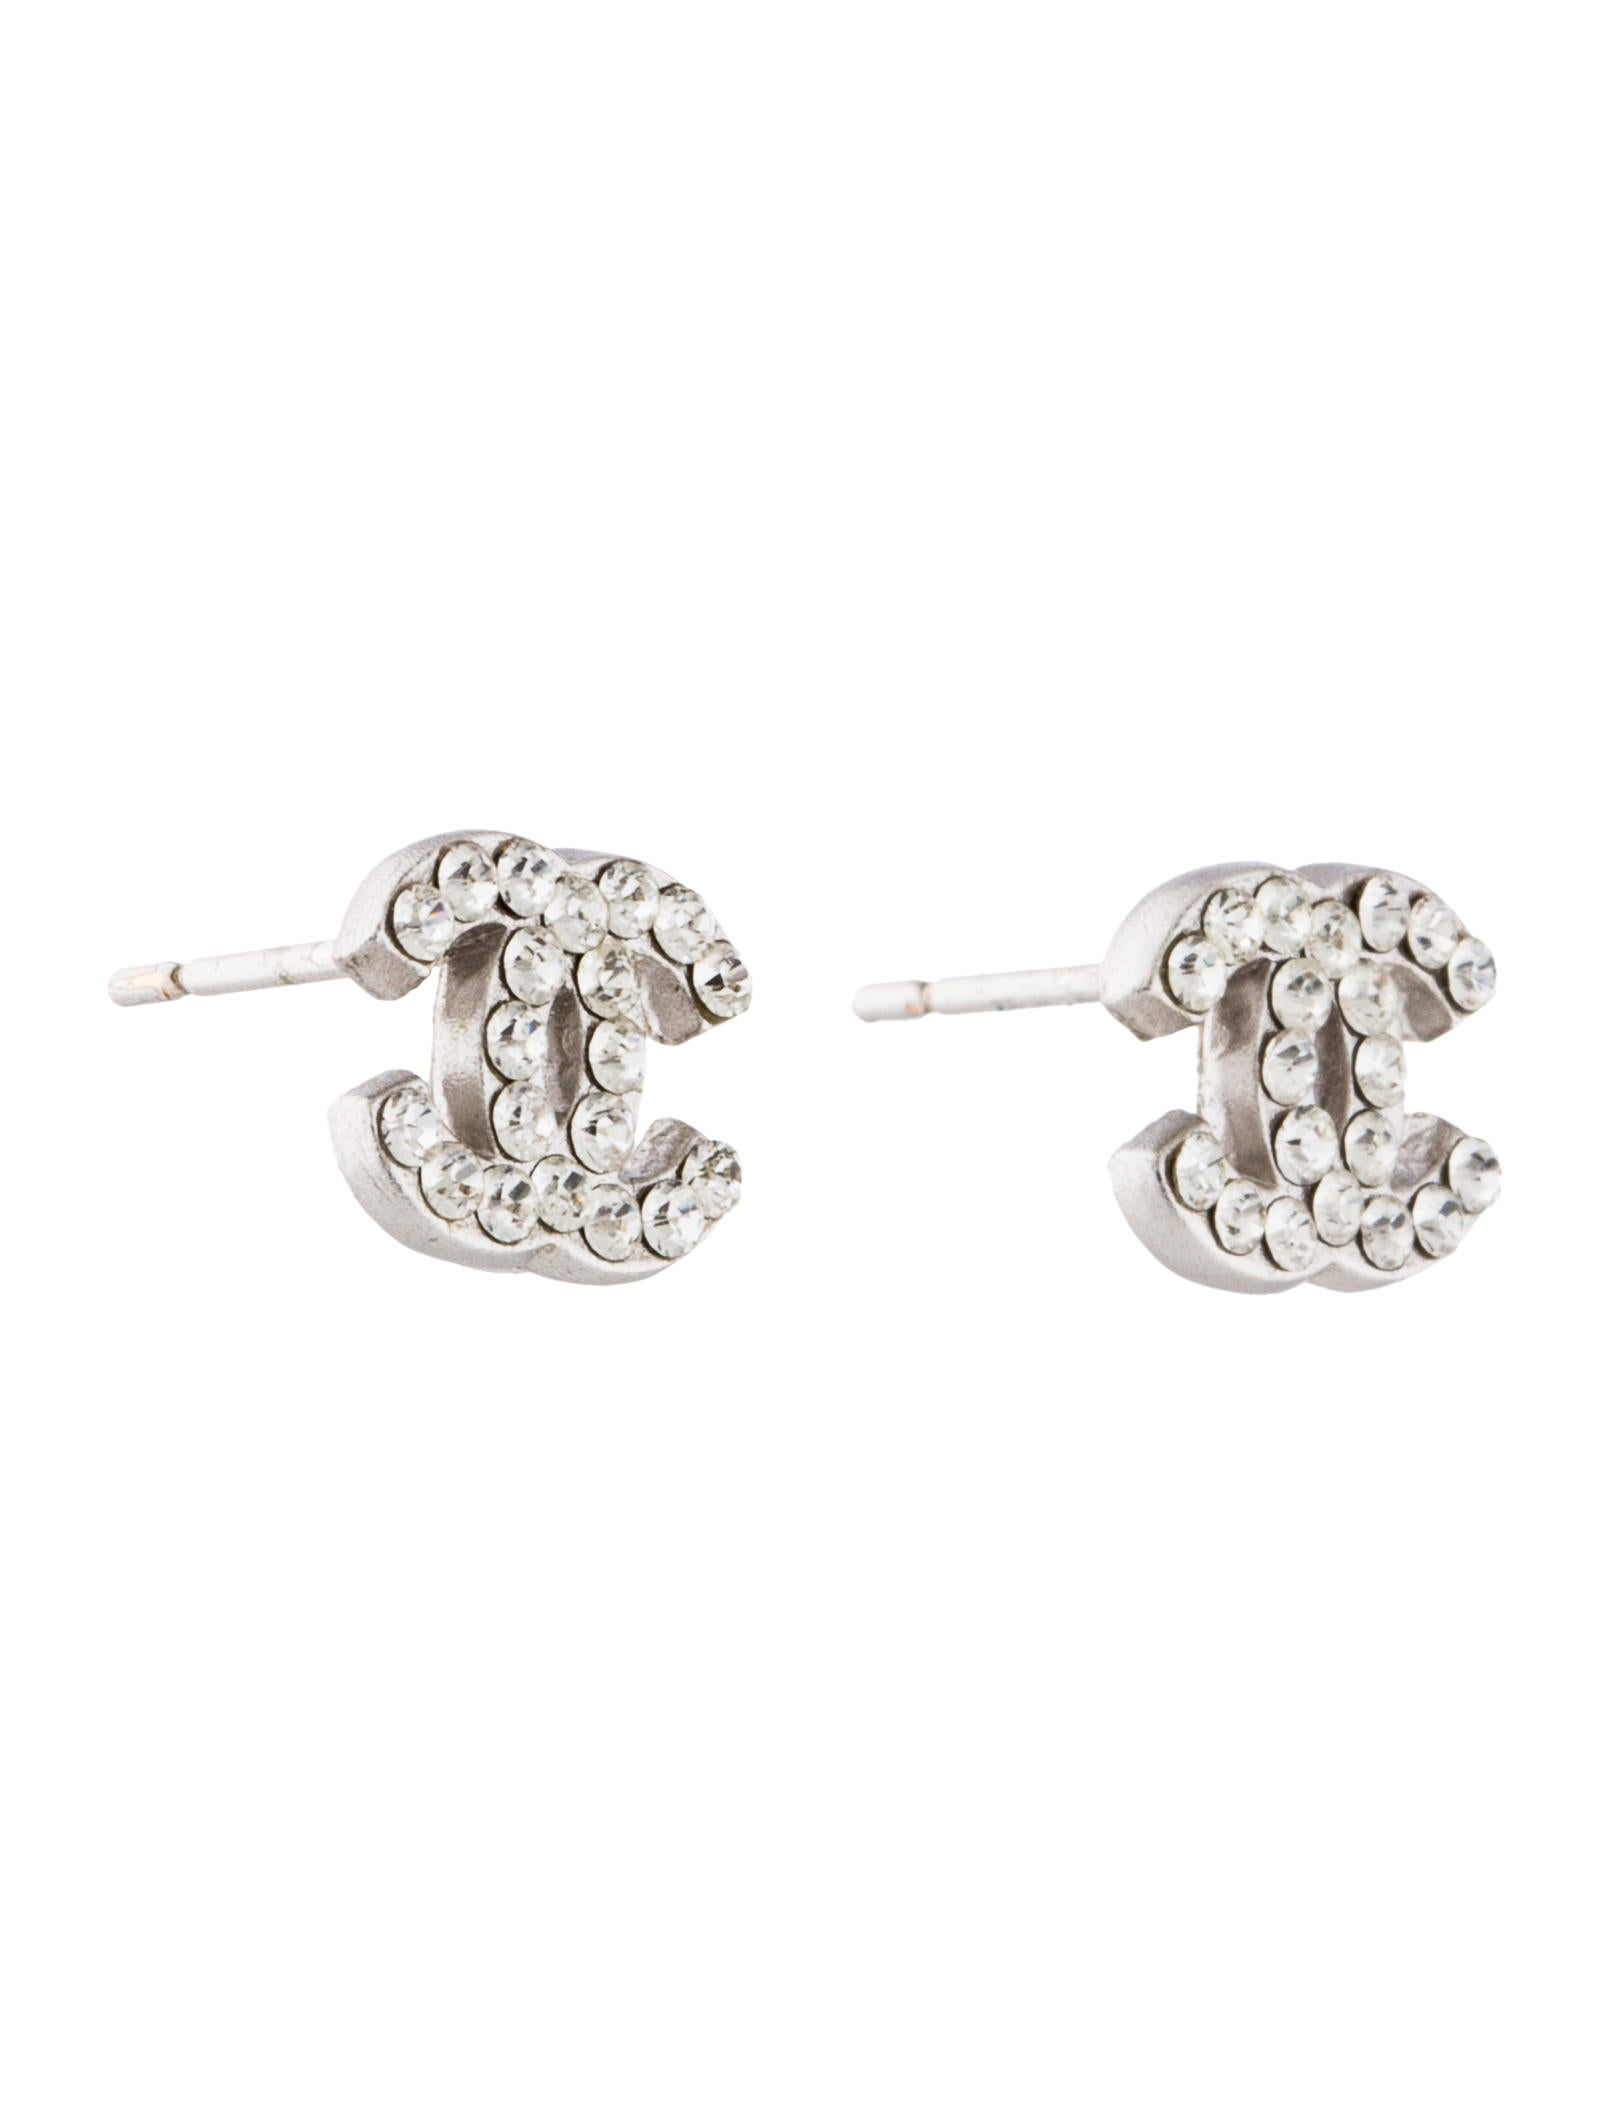 channel earrings studs chanel cc studs earrings cha156964 the realreal 6522